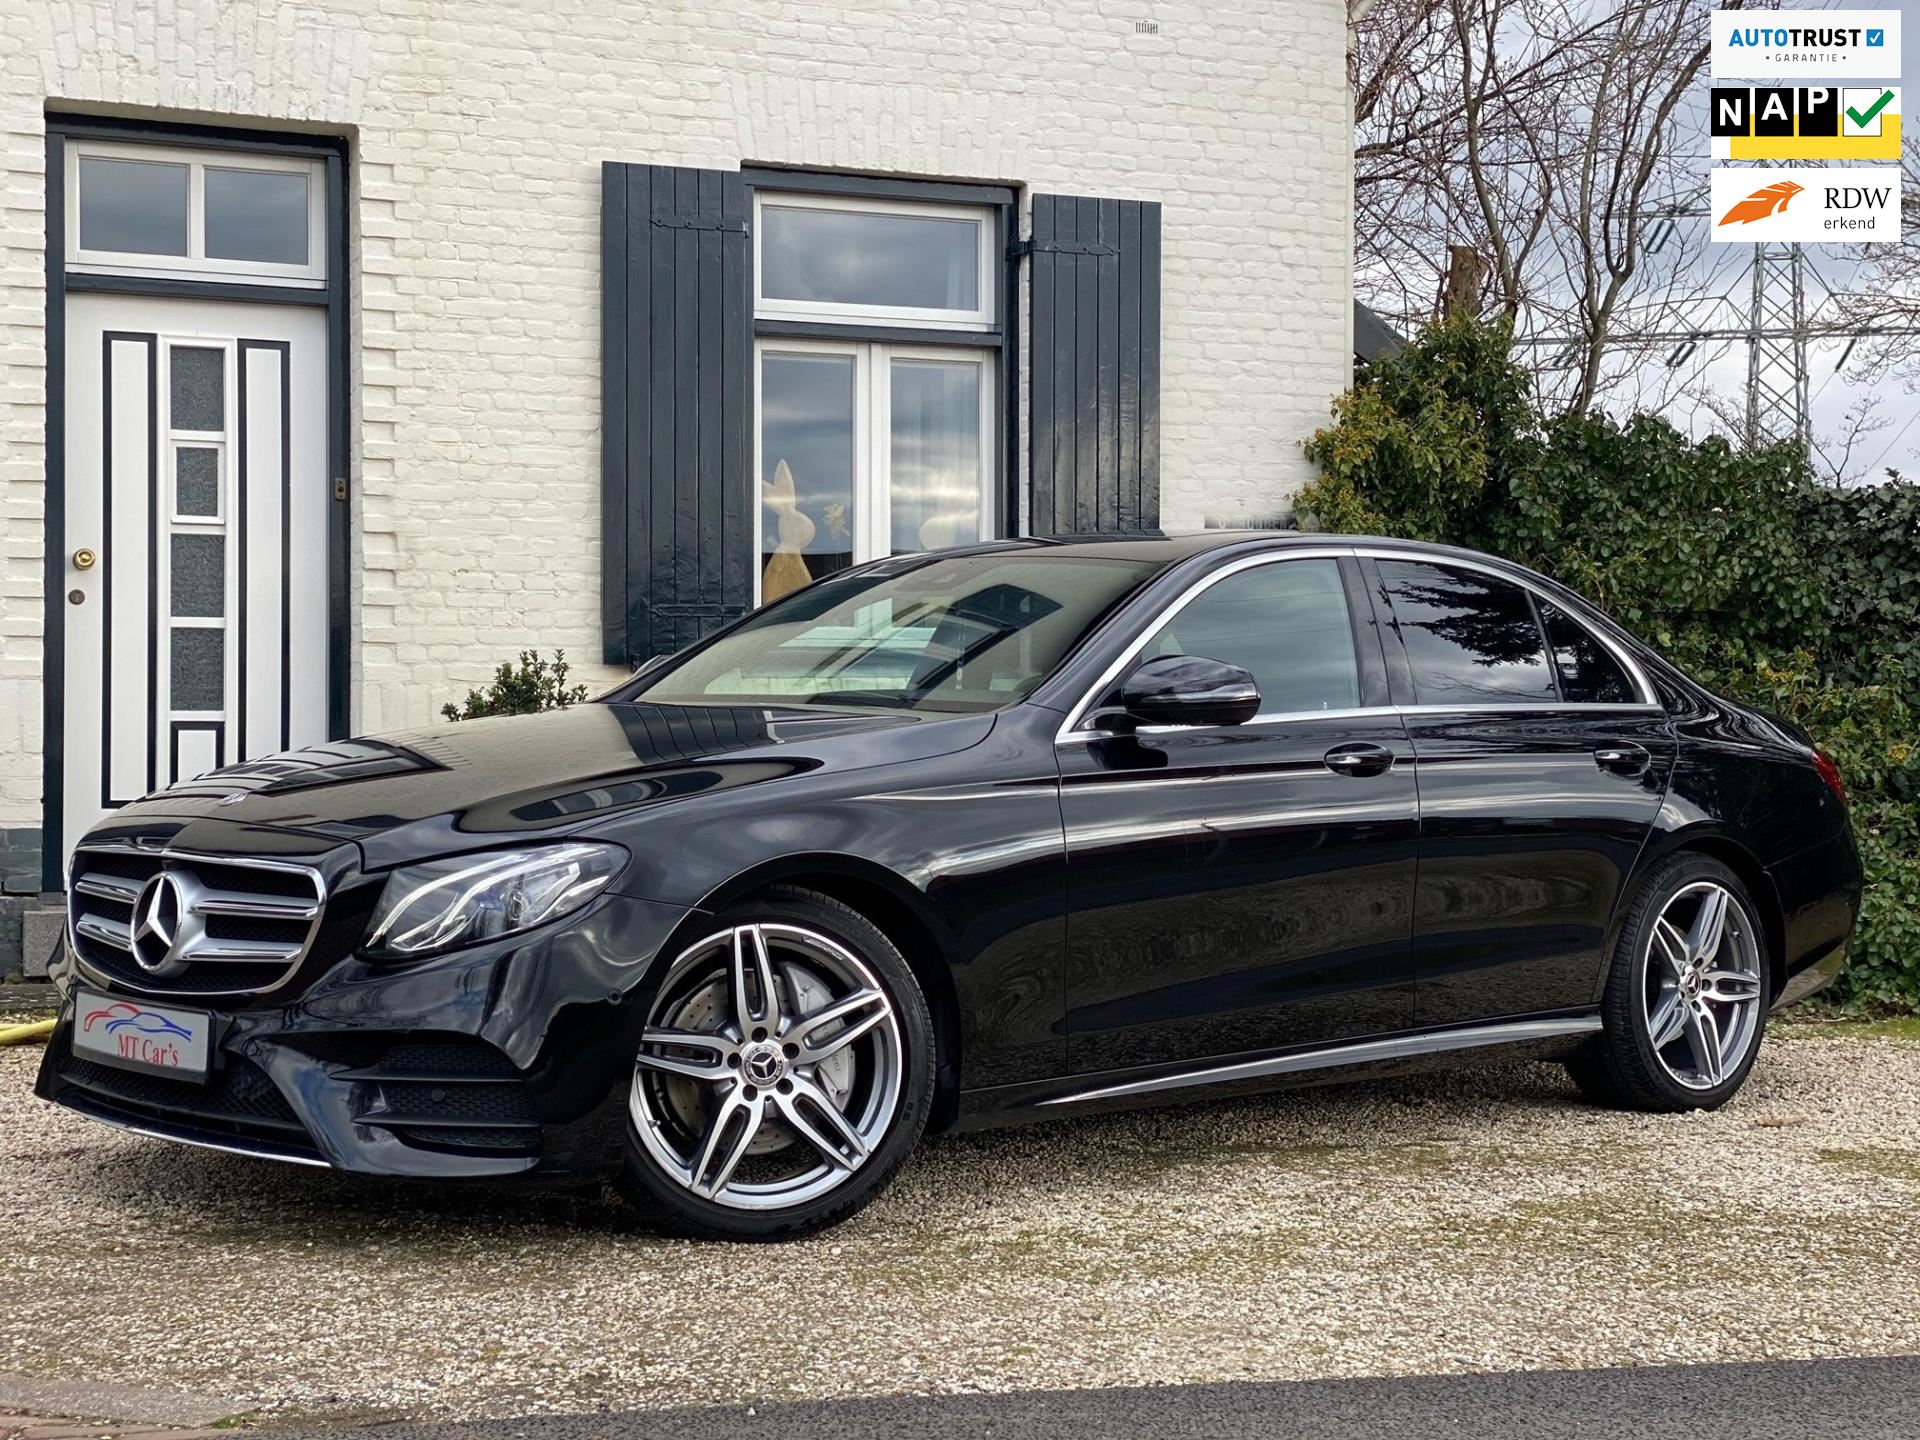 Mercedes-Benz E-klasse occasion - M.T.  Cars & Carcleaningcenter